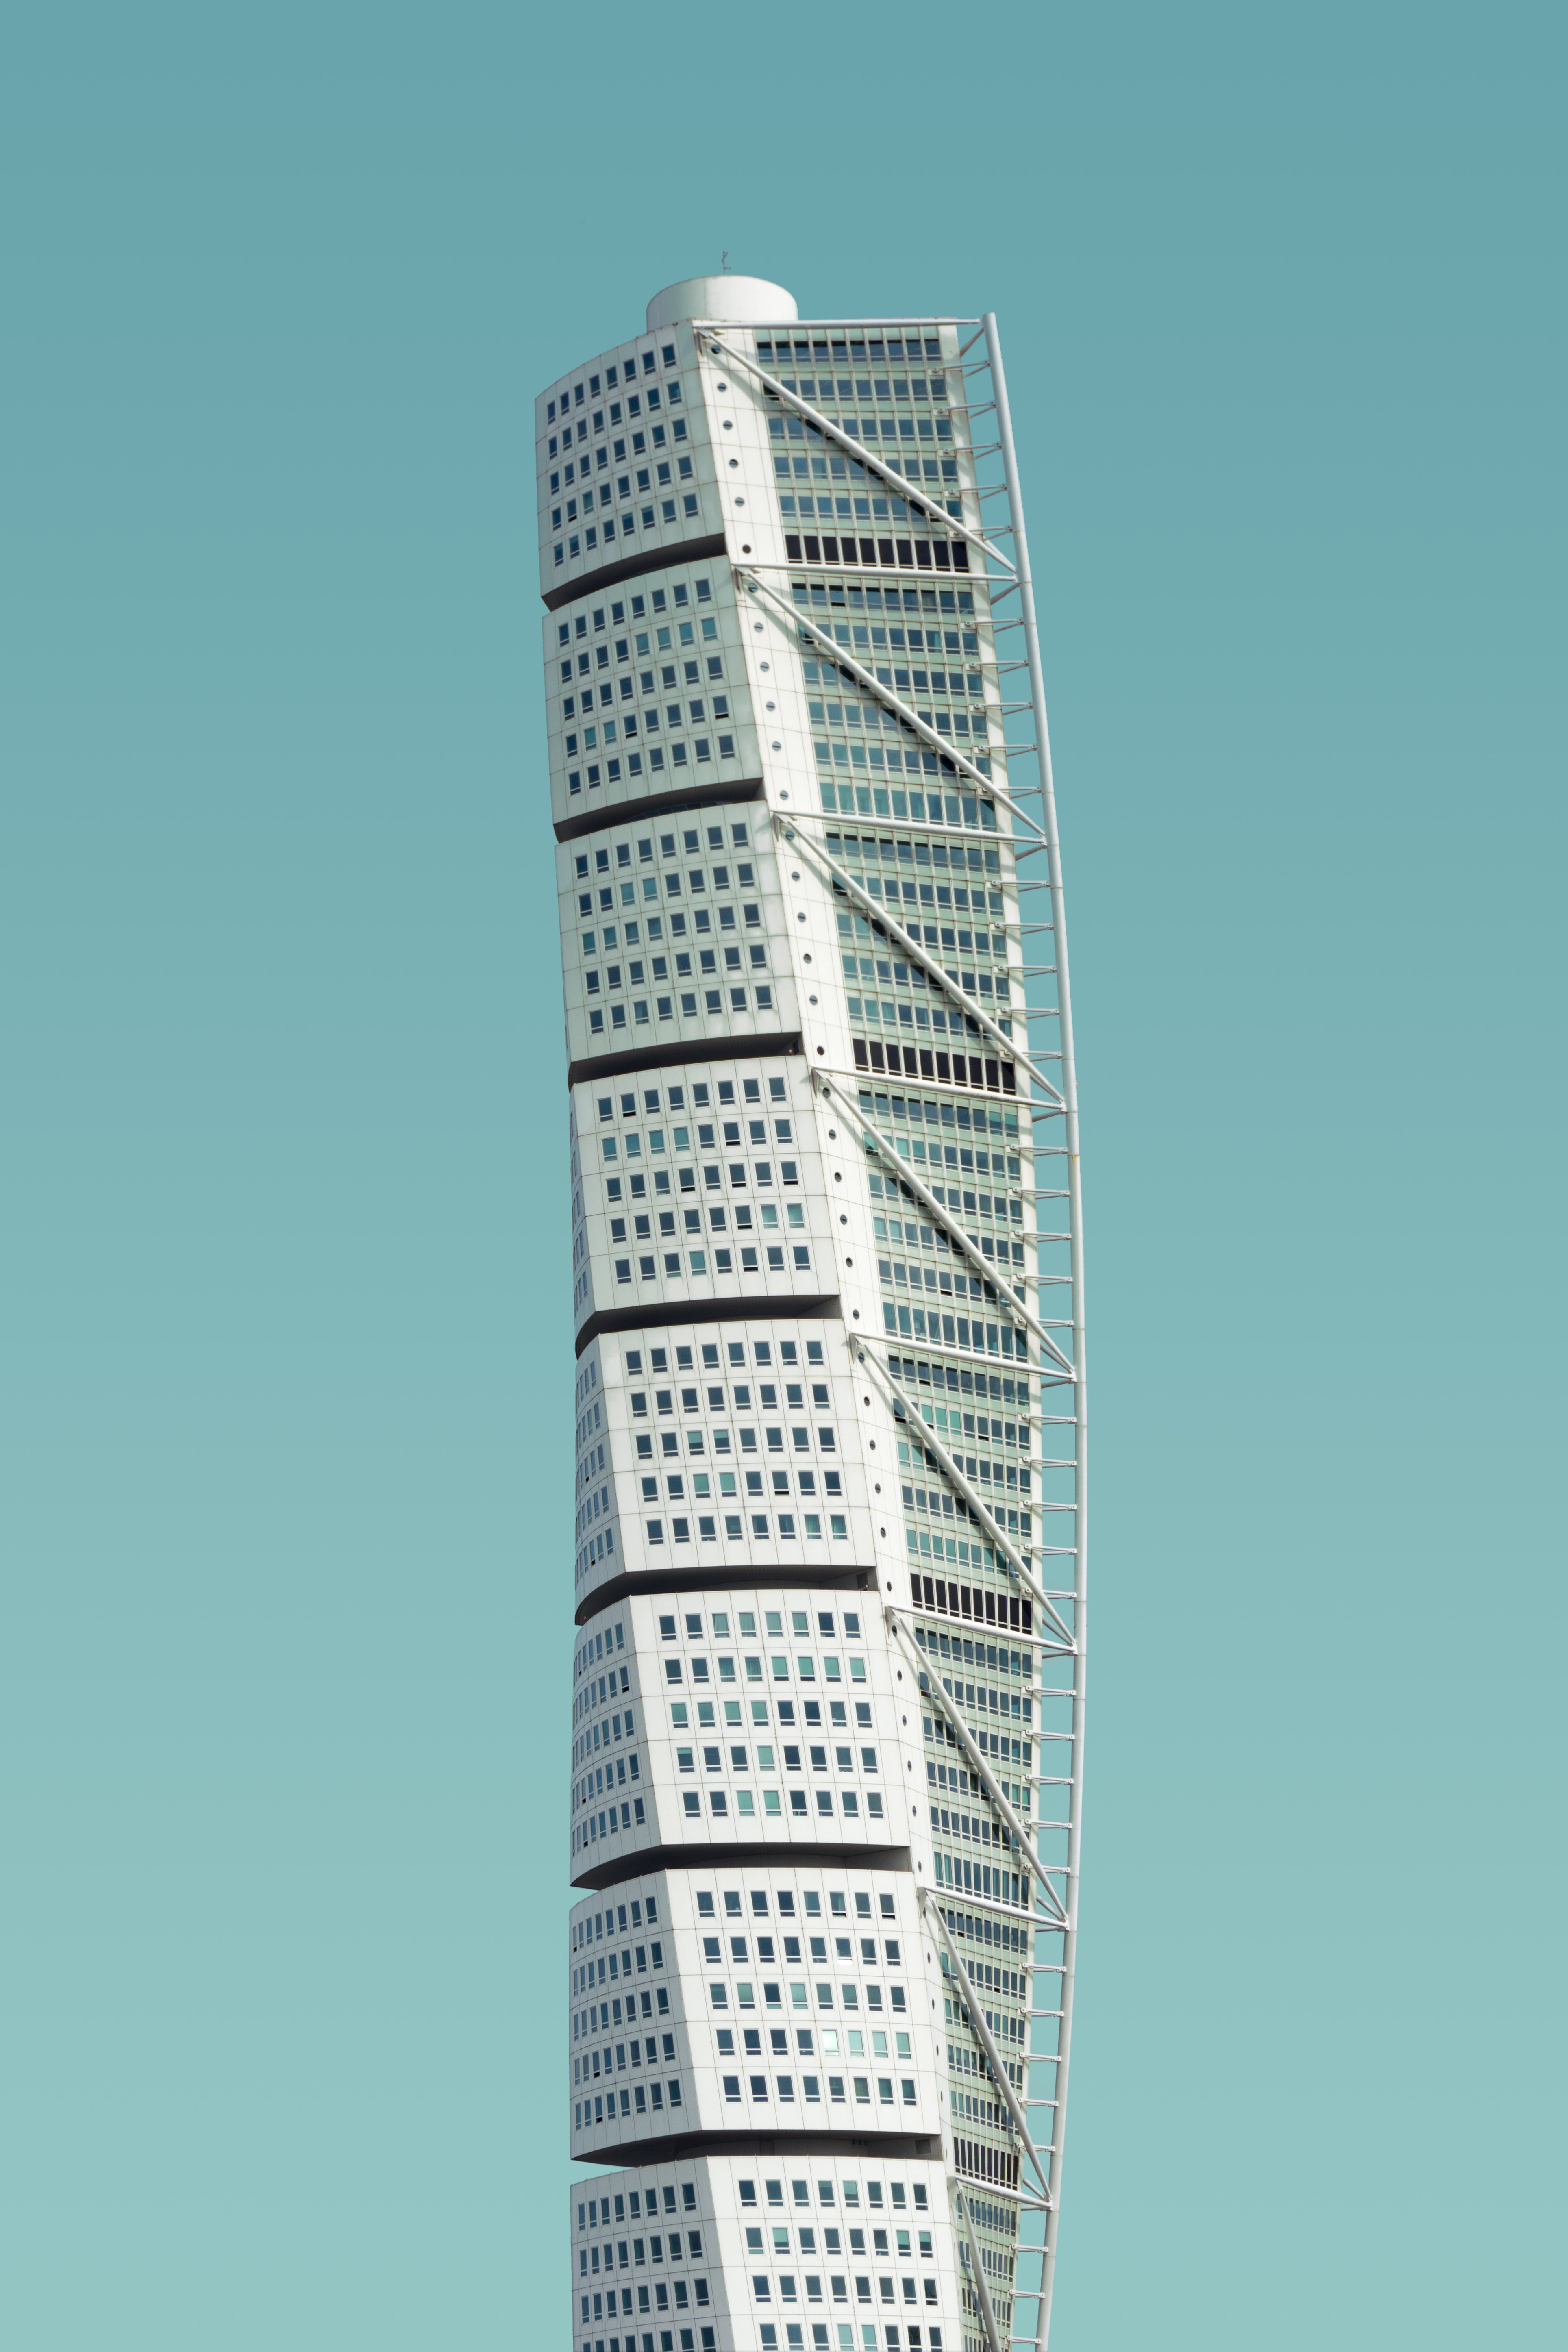 photo of white high-rise building